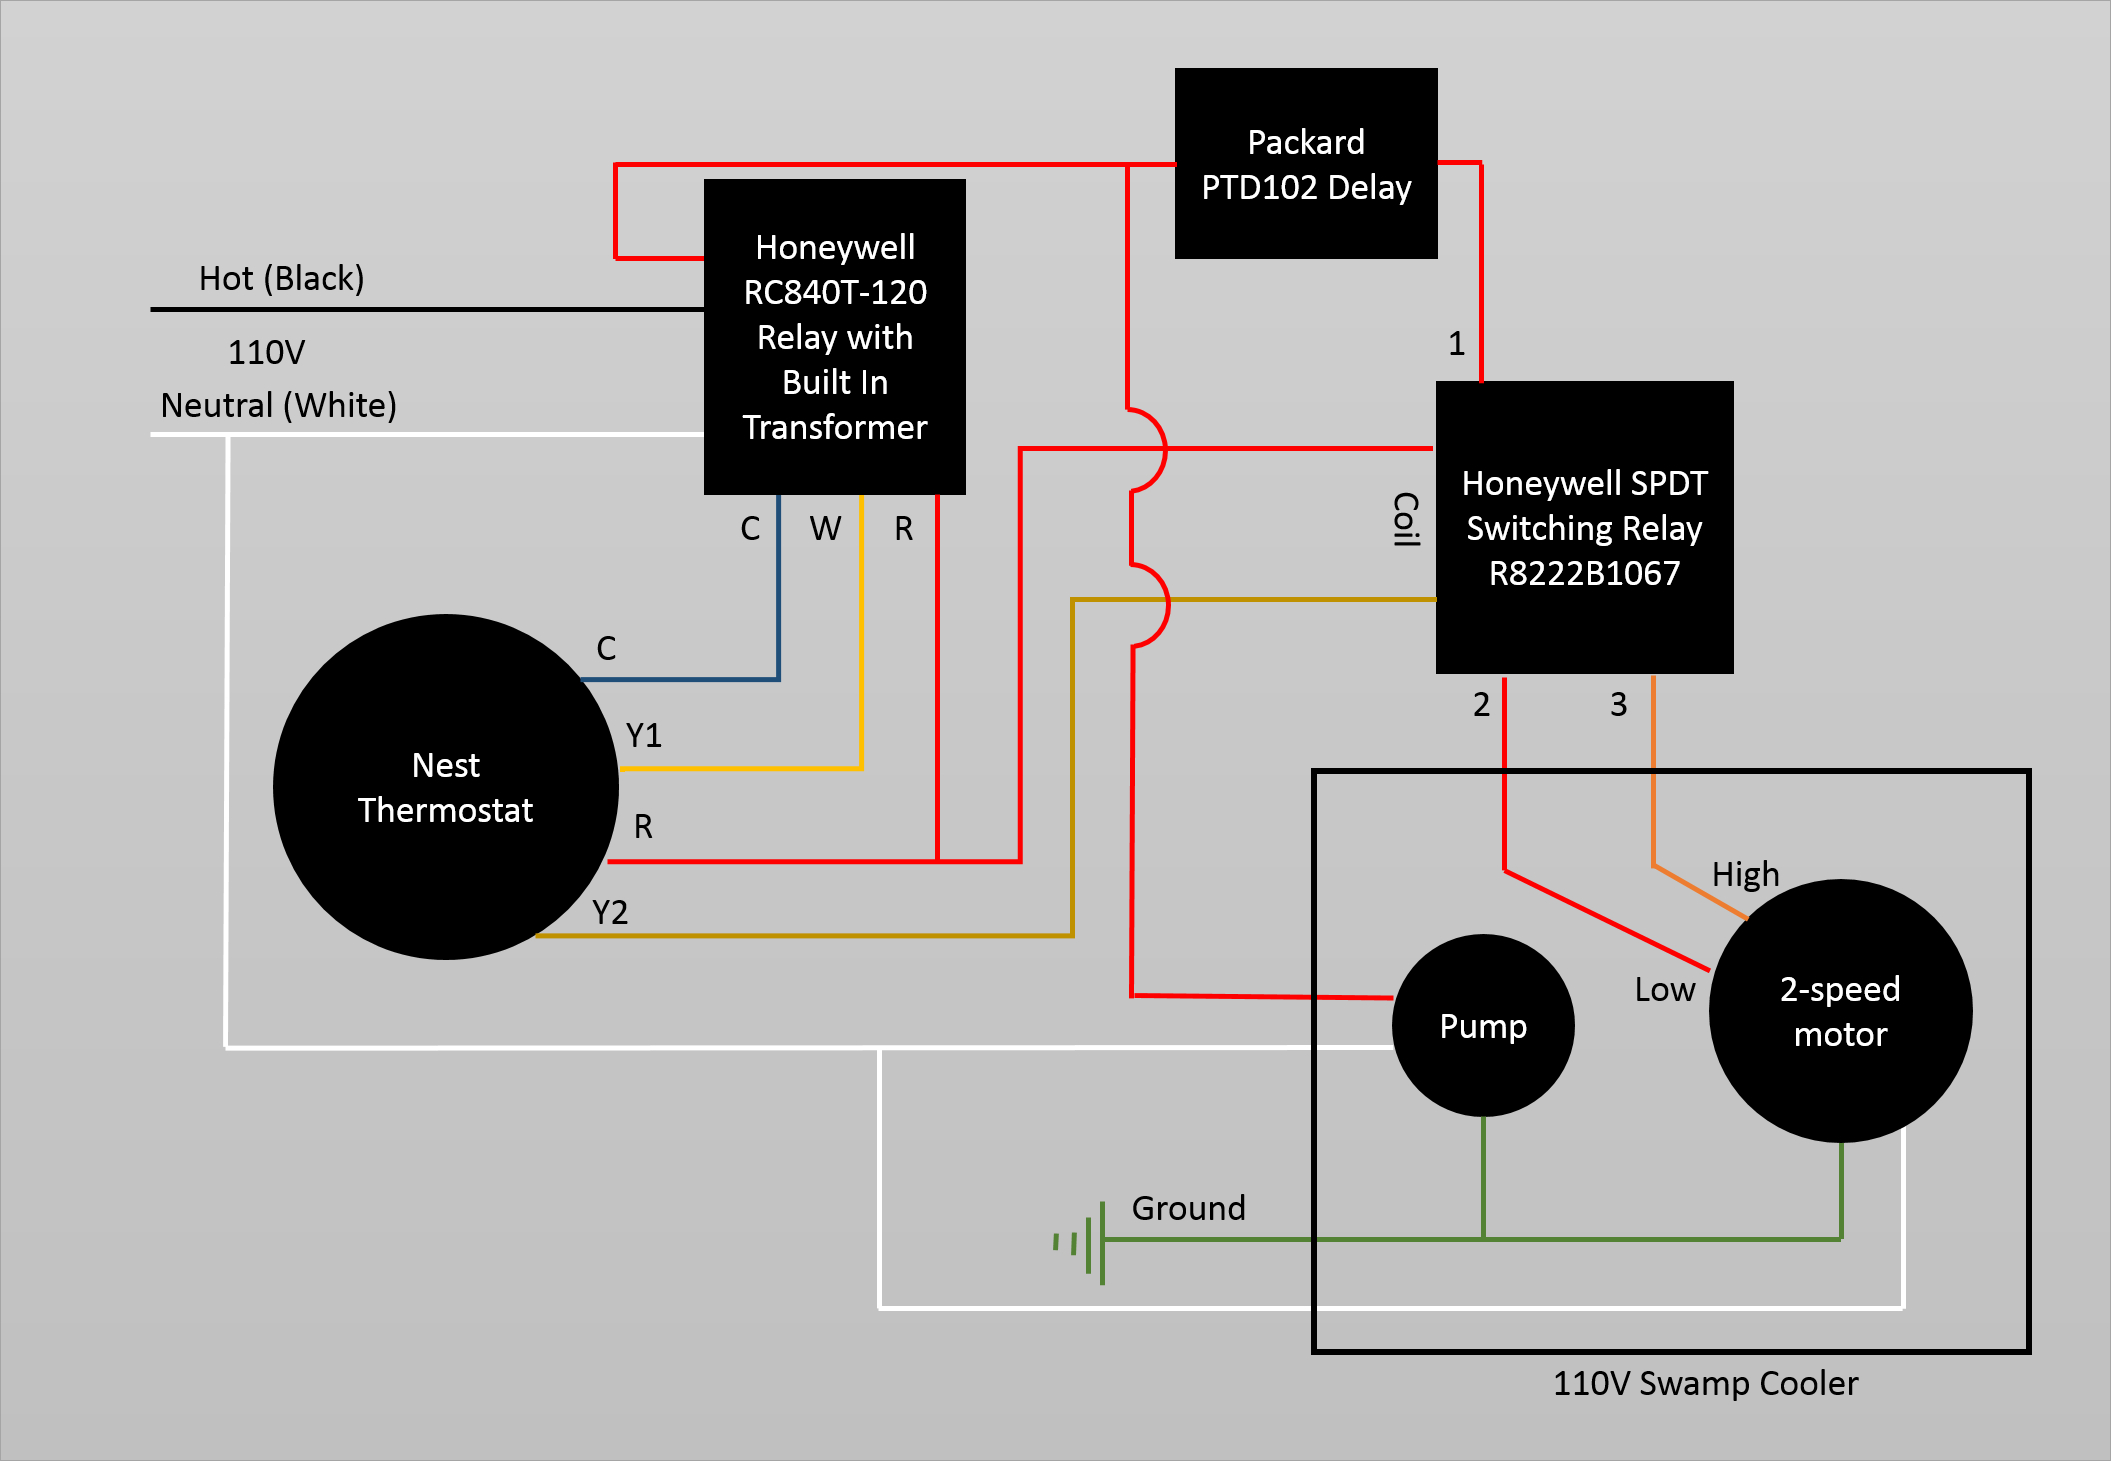 Wiring - Controlling 110V Swamp Cooler Using Nest Thermostat - Home - Nest Wireless Thermostat Wiring Diagram Two System